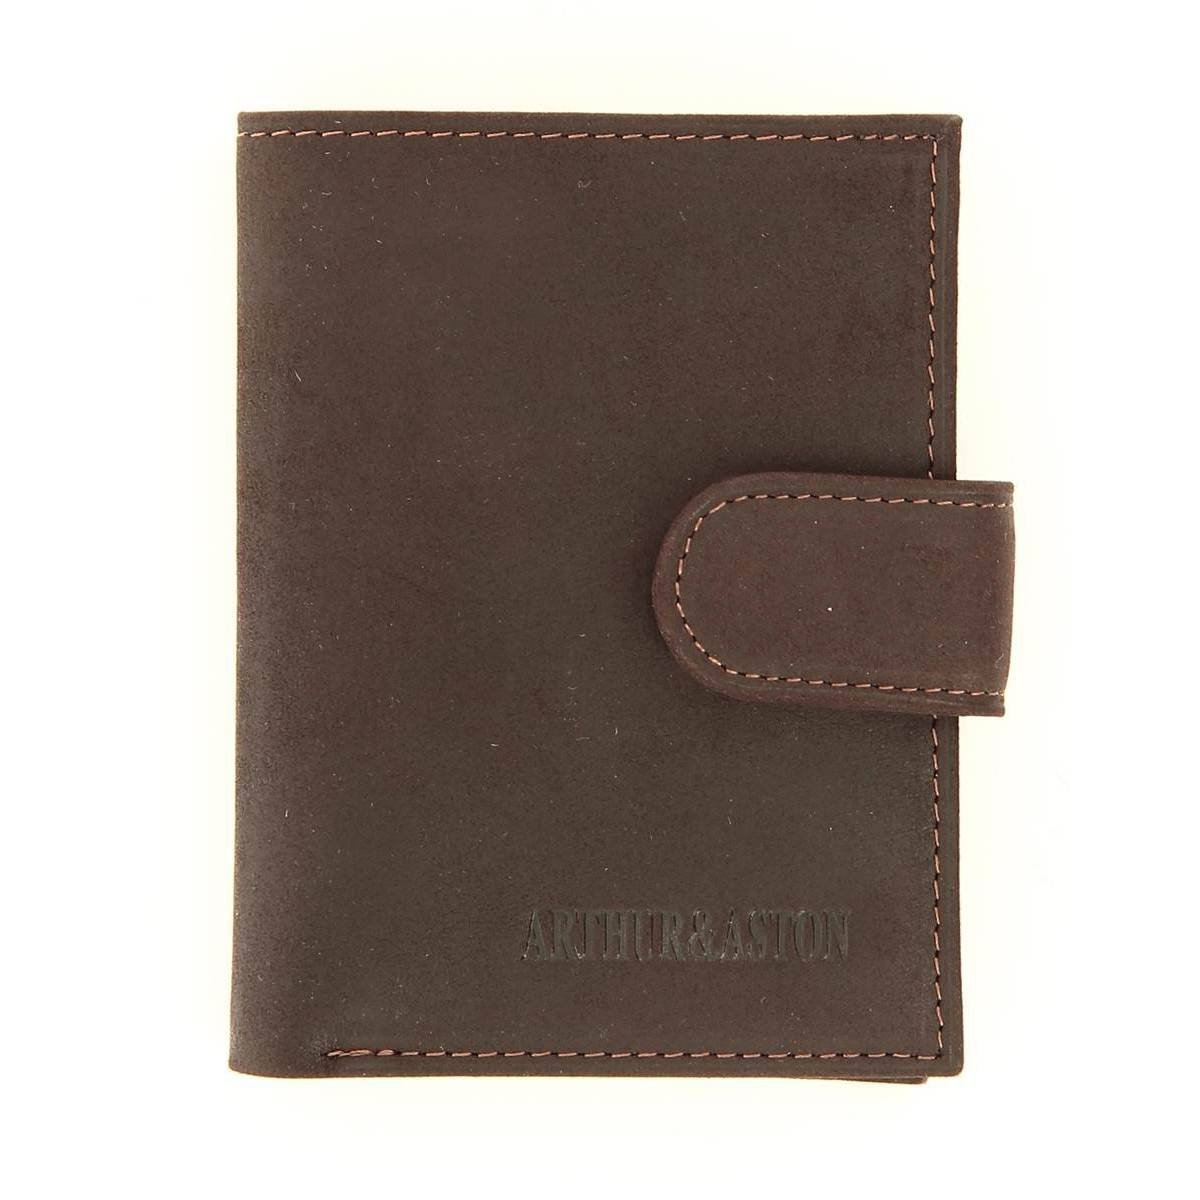 Arthur et aston porte cartes homme 94654 for Porte carte homme